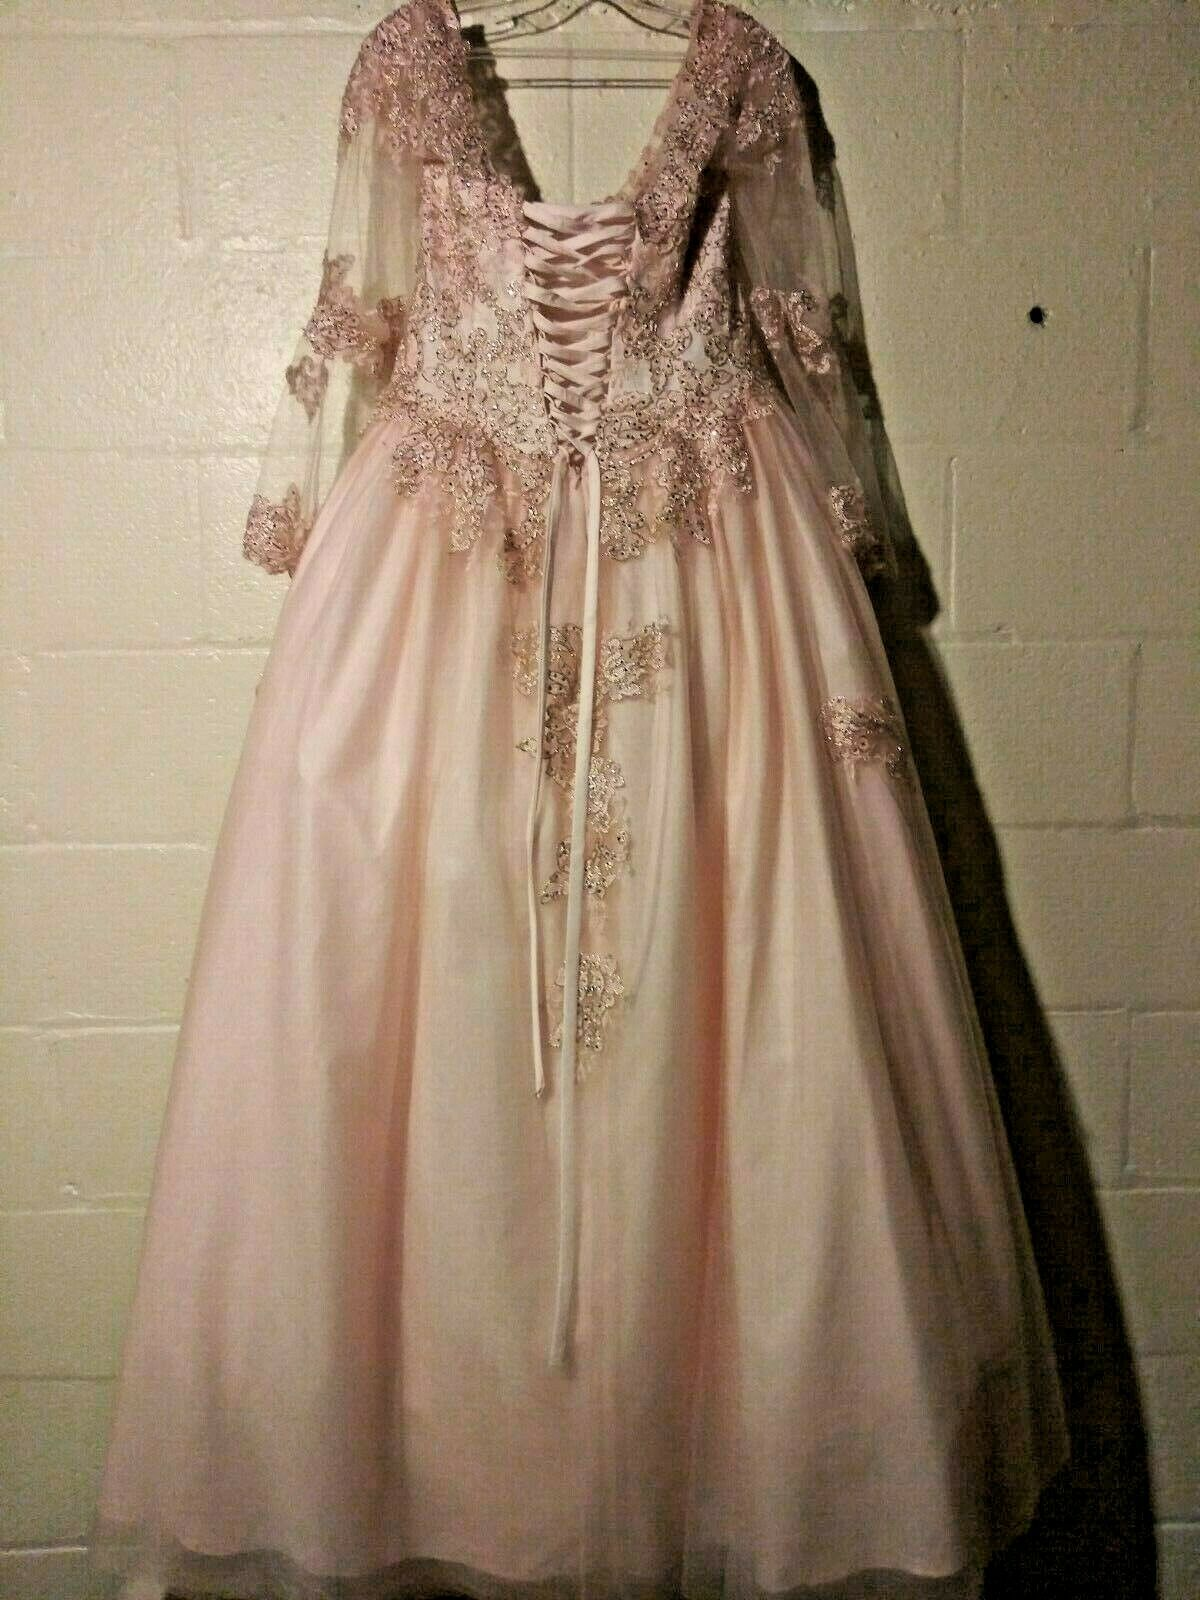 Plus Size Ball Gown - image 2